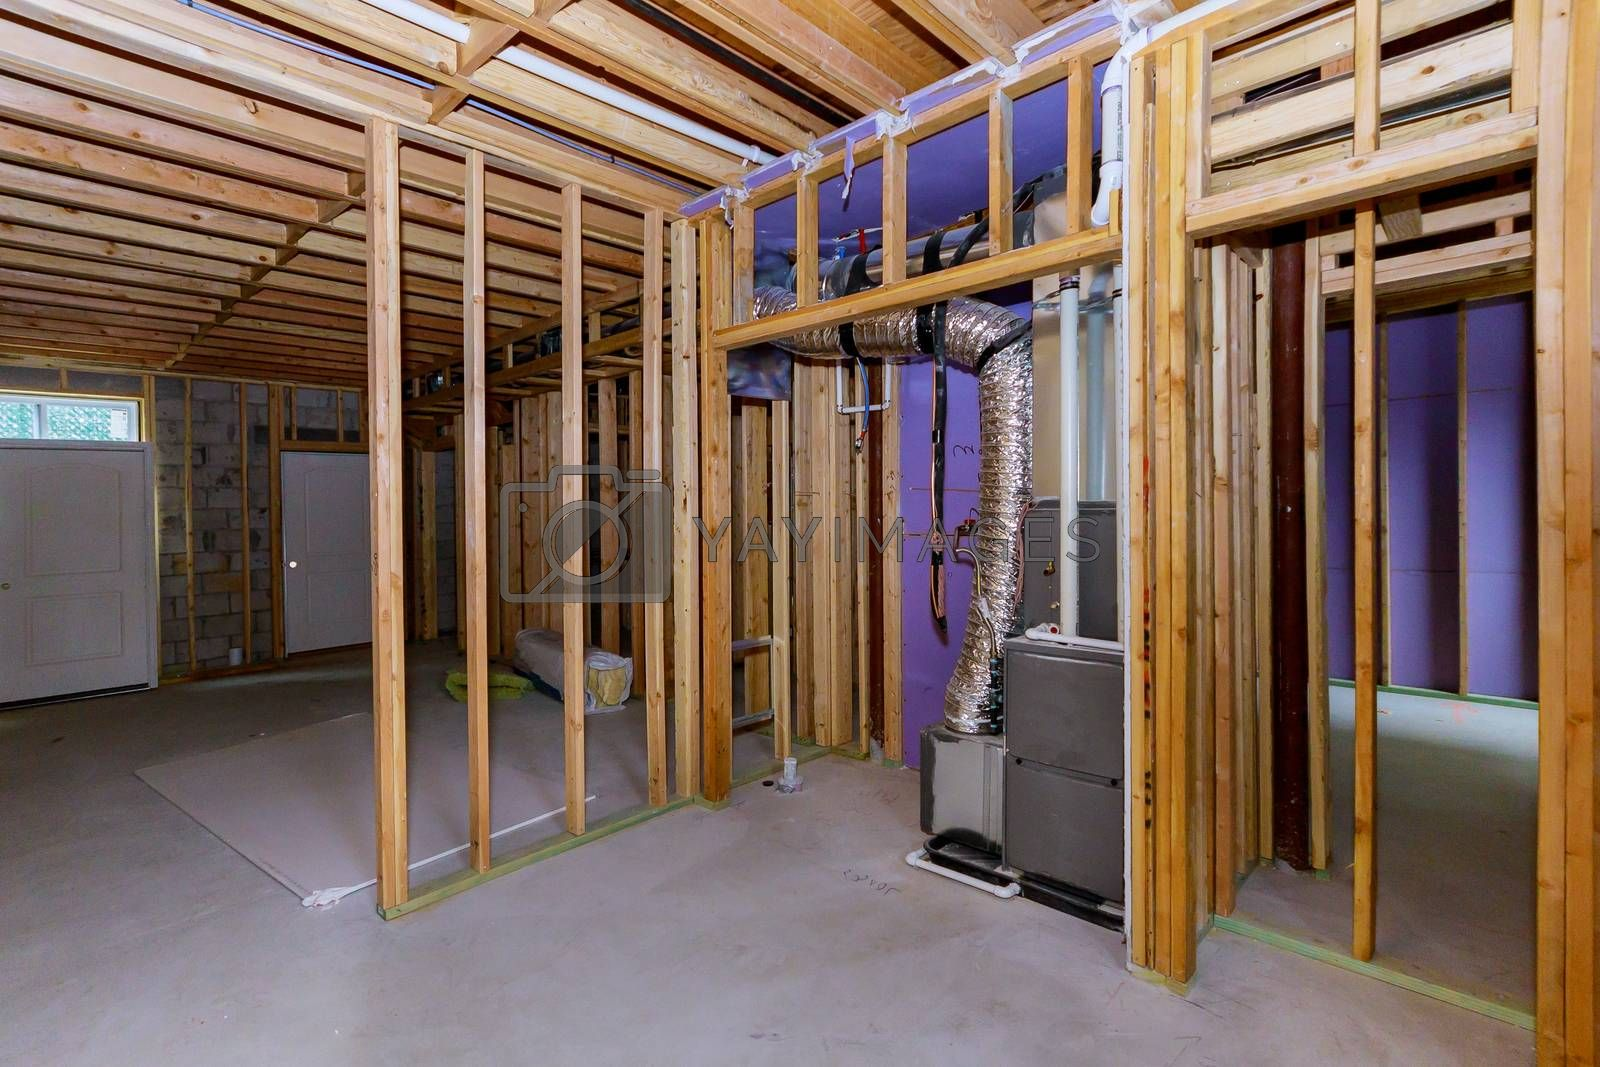 Interior view of a basement under construction home framing with beam in home heating system